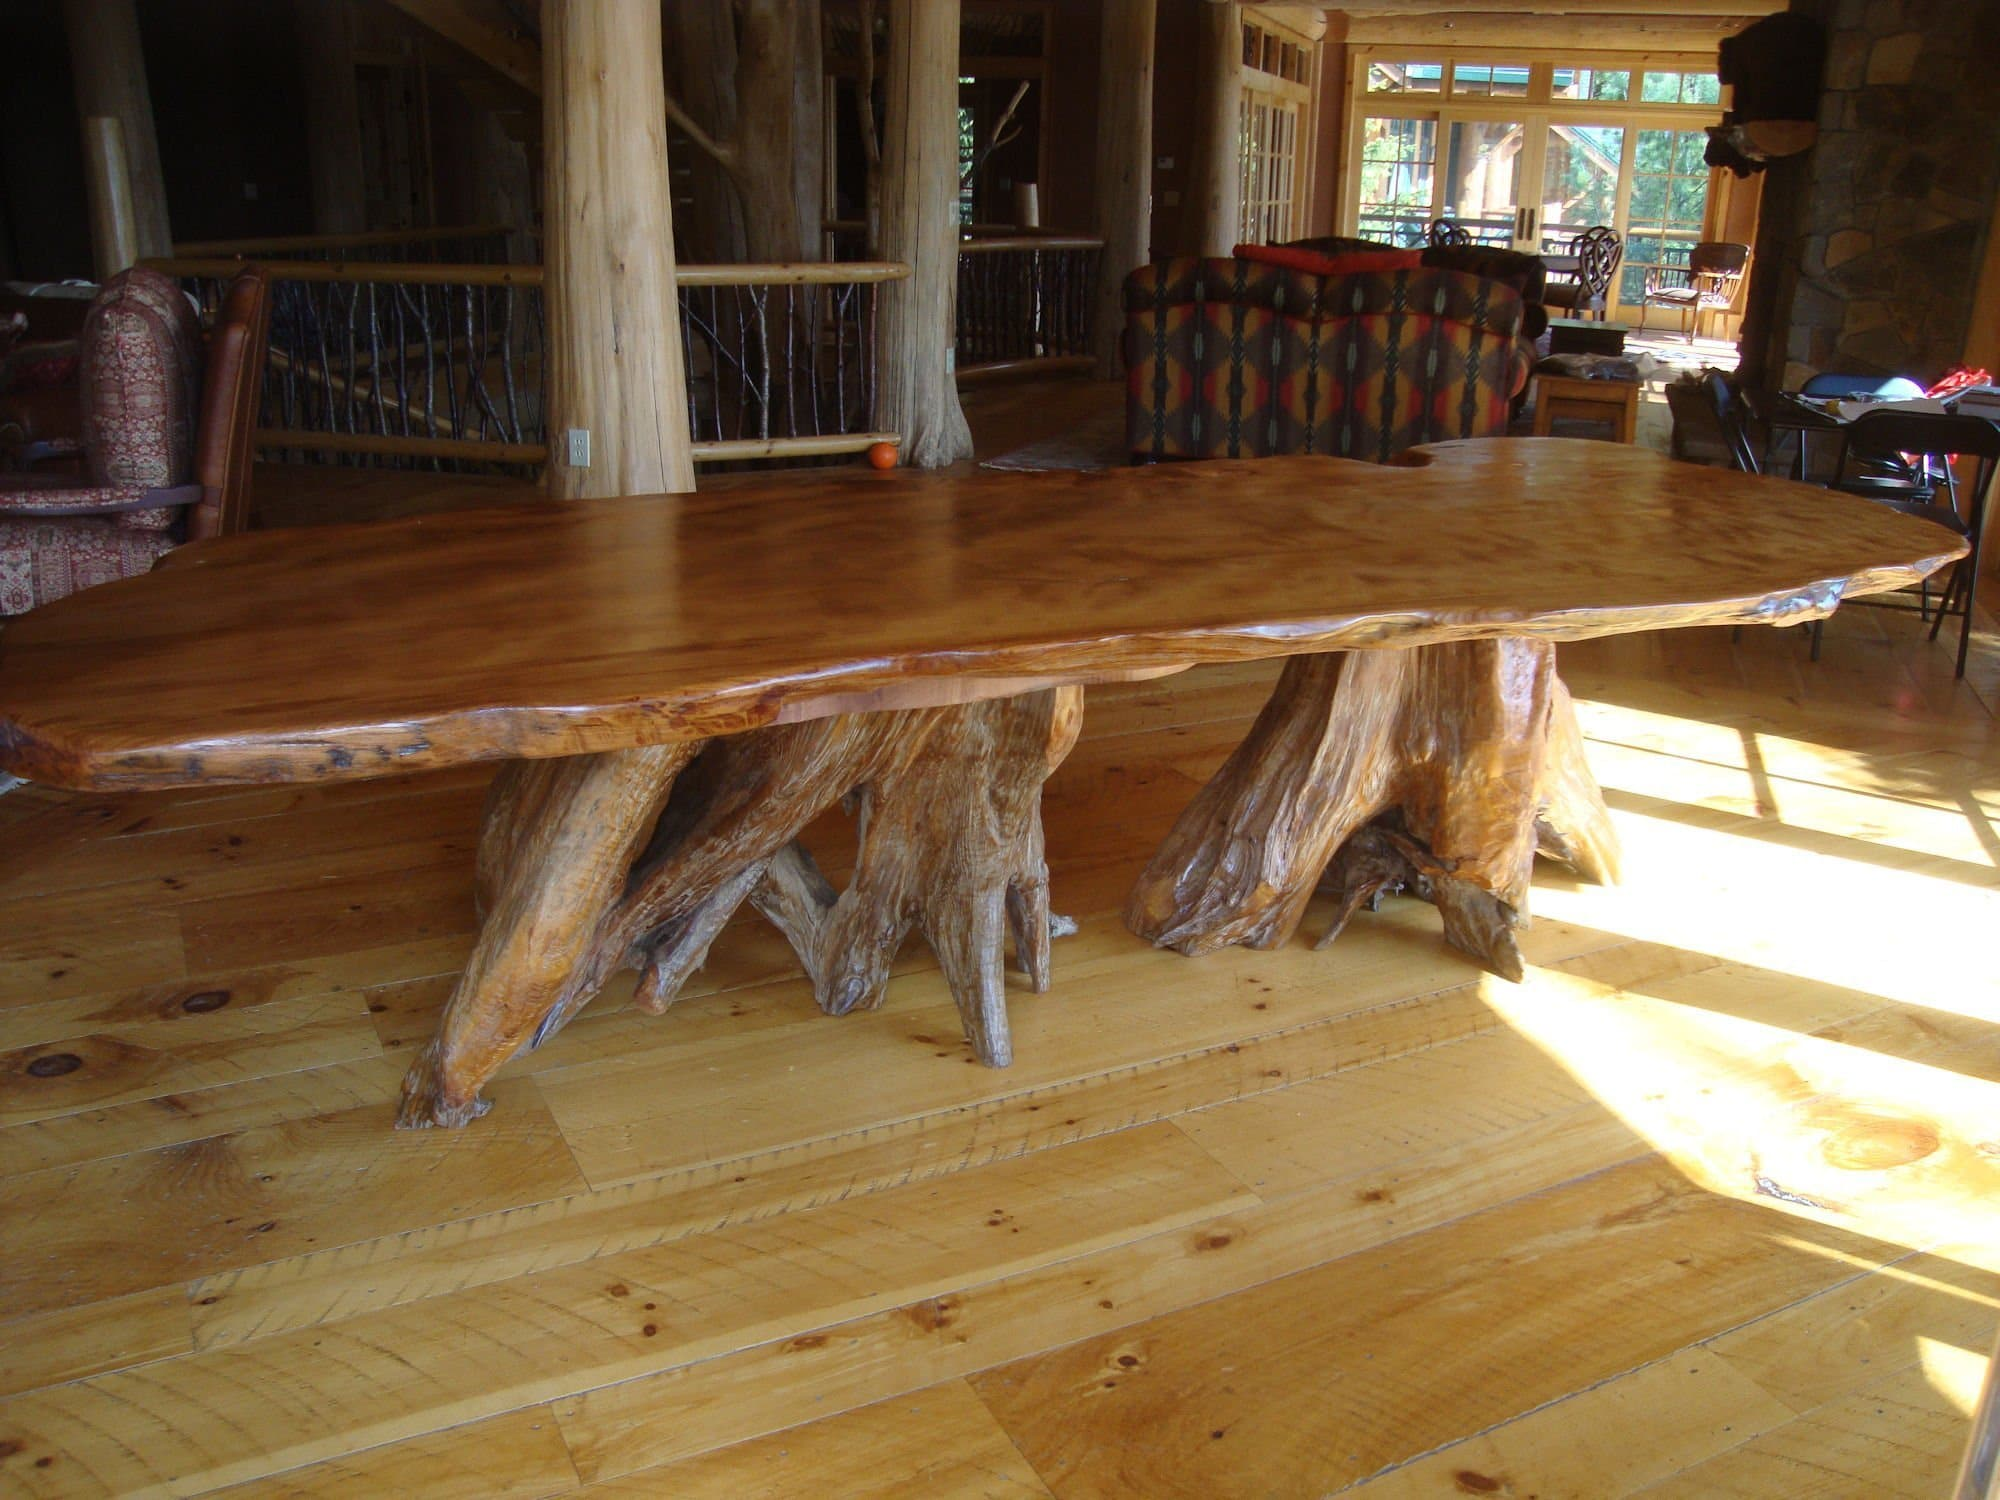 rustic outdoor dining table plans plans diy free download home made router table diy kitchen table plans rustic outdoor dining table plans